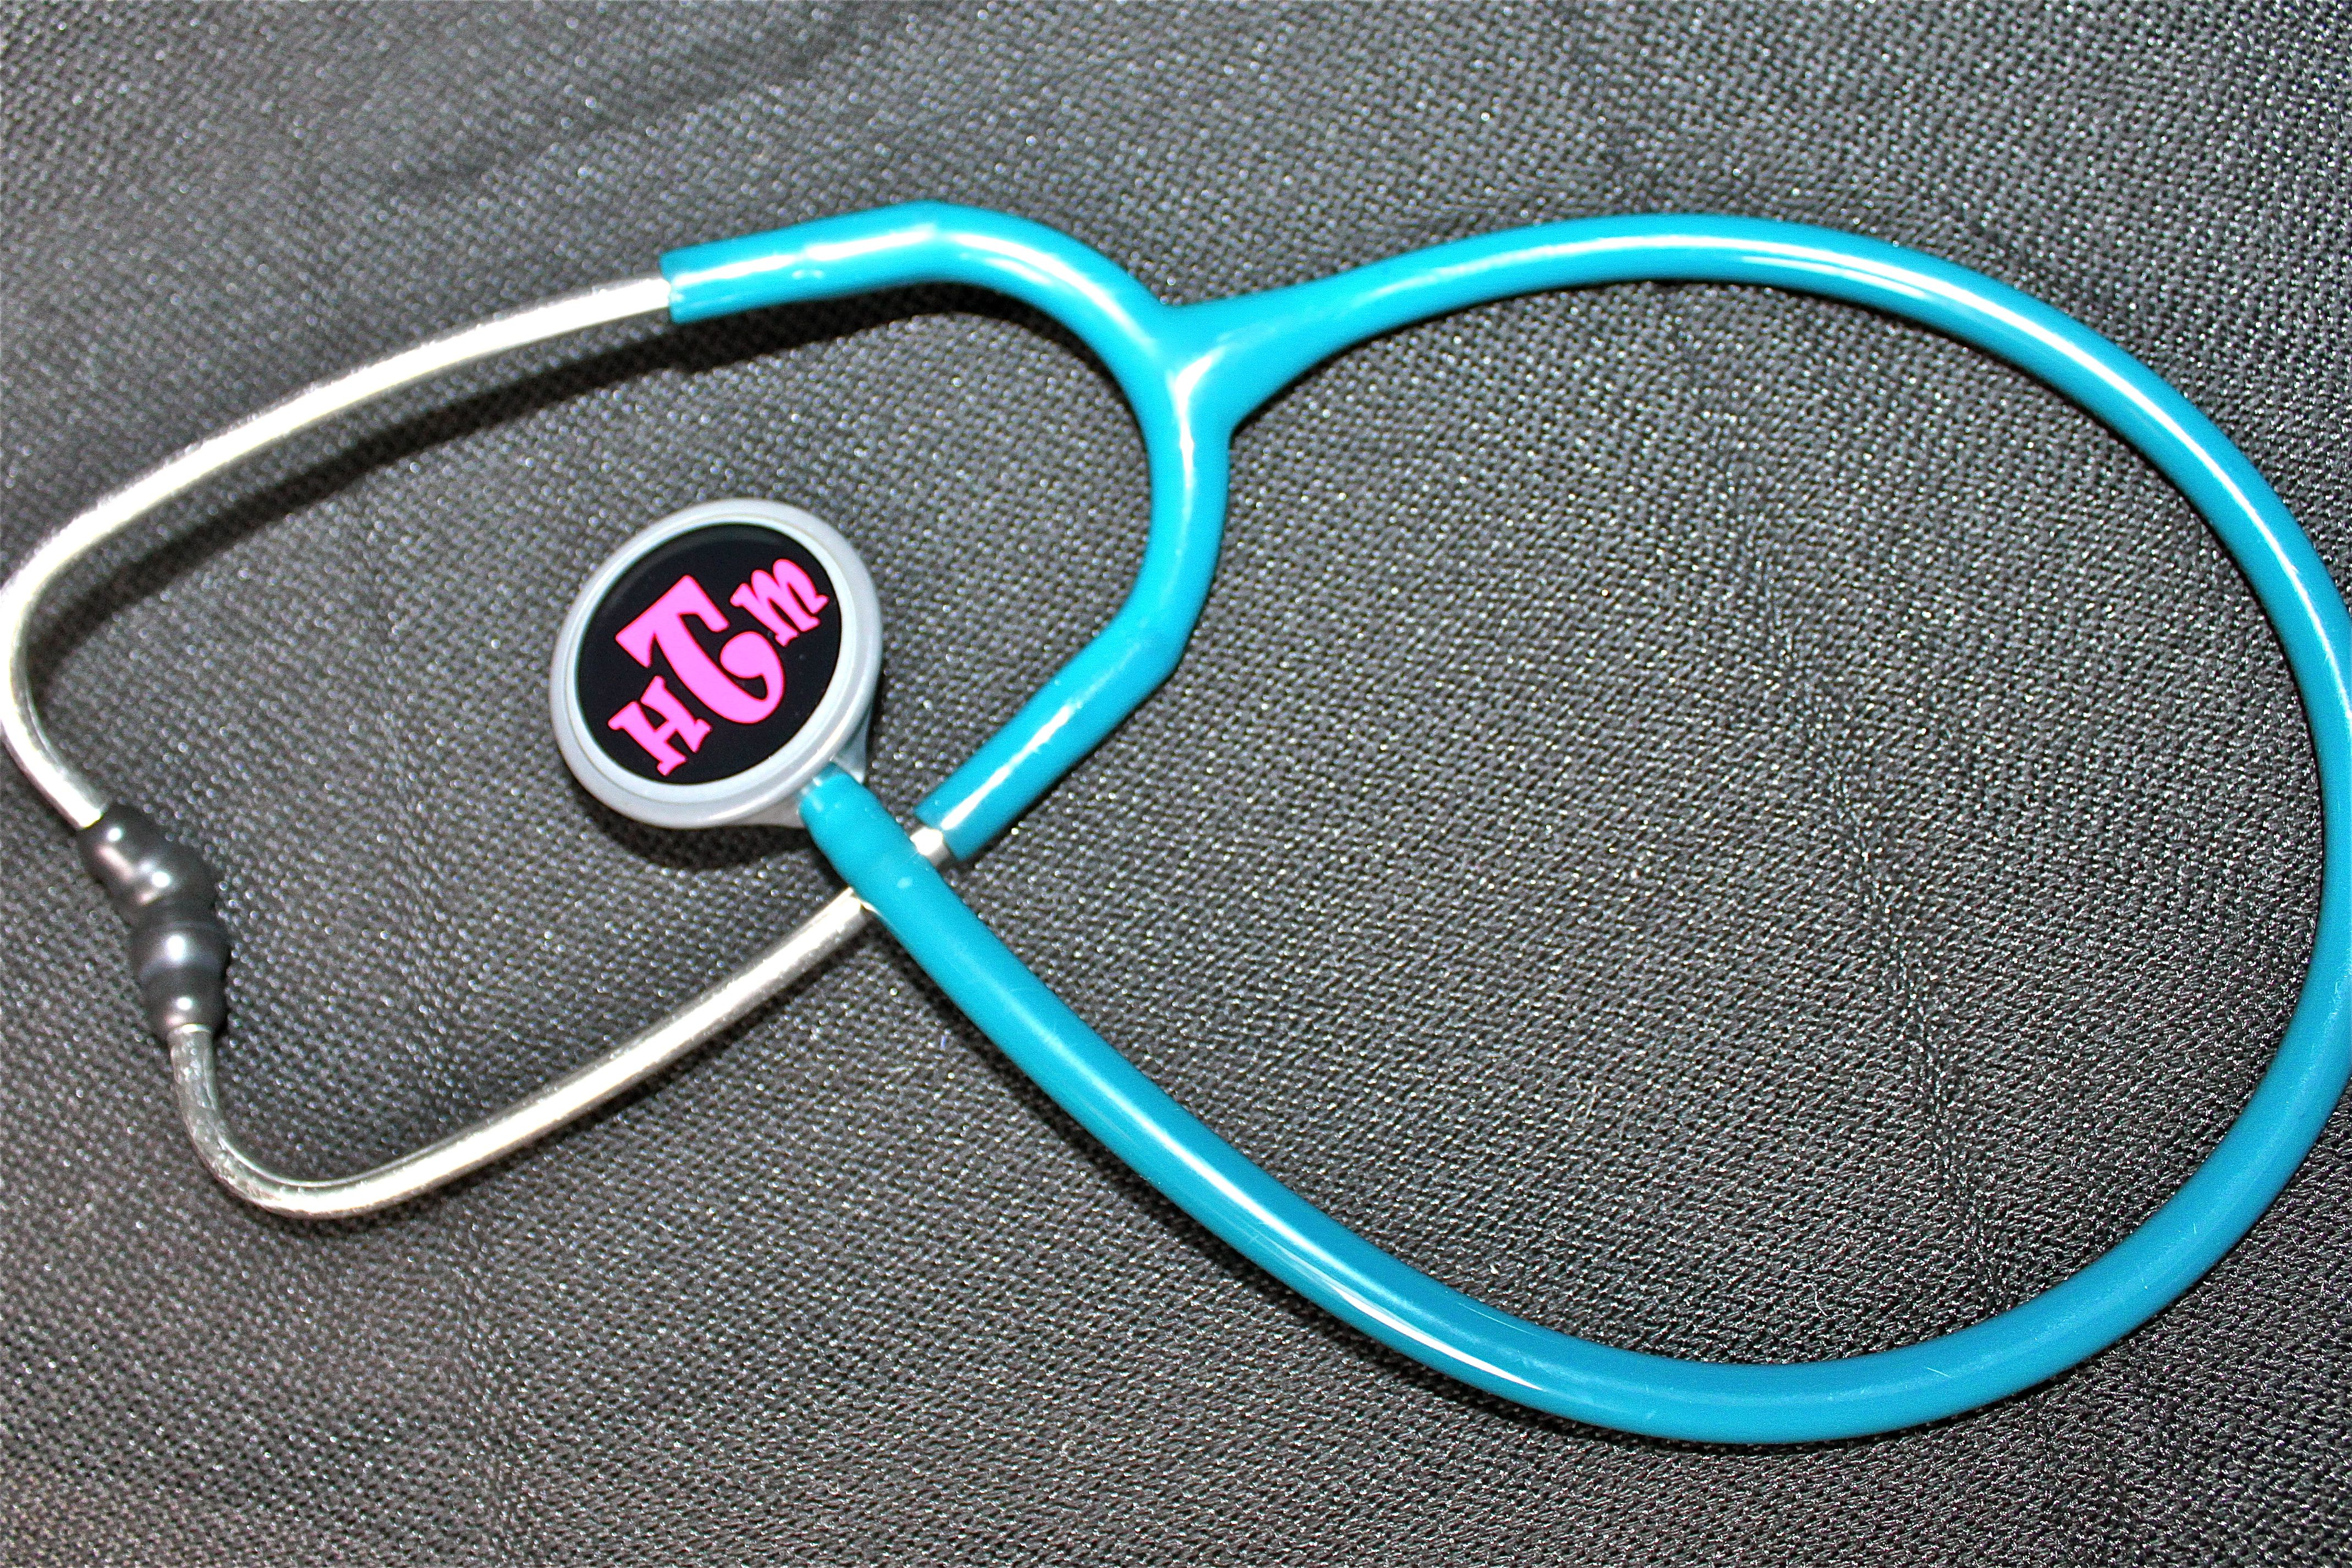 Decal-zzle up your stethescope.  Cool custom cut vinyl covers for your diaphragm.  See us on facebook or etsy at iDesign Decals.